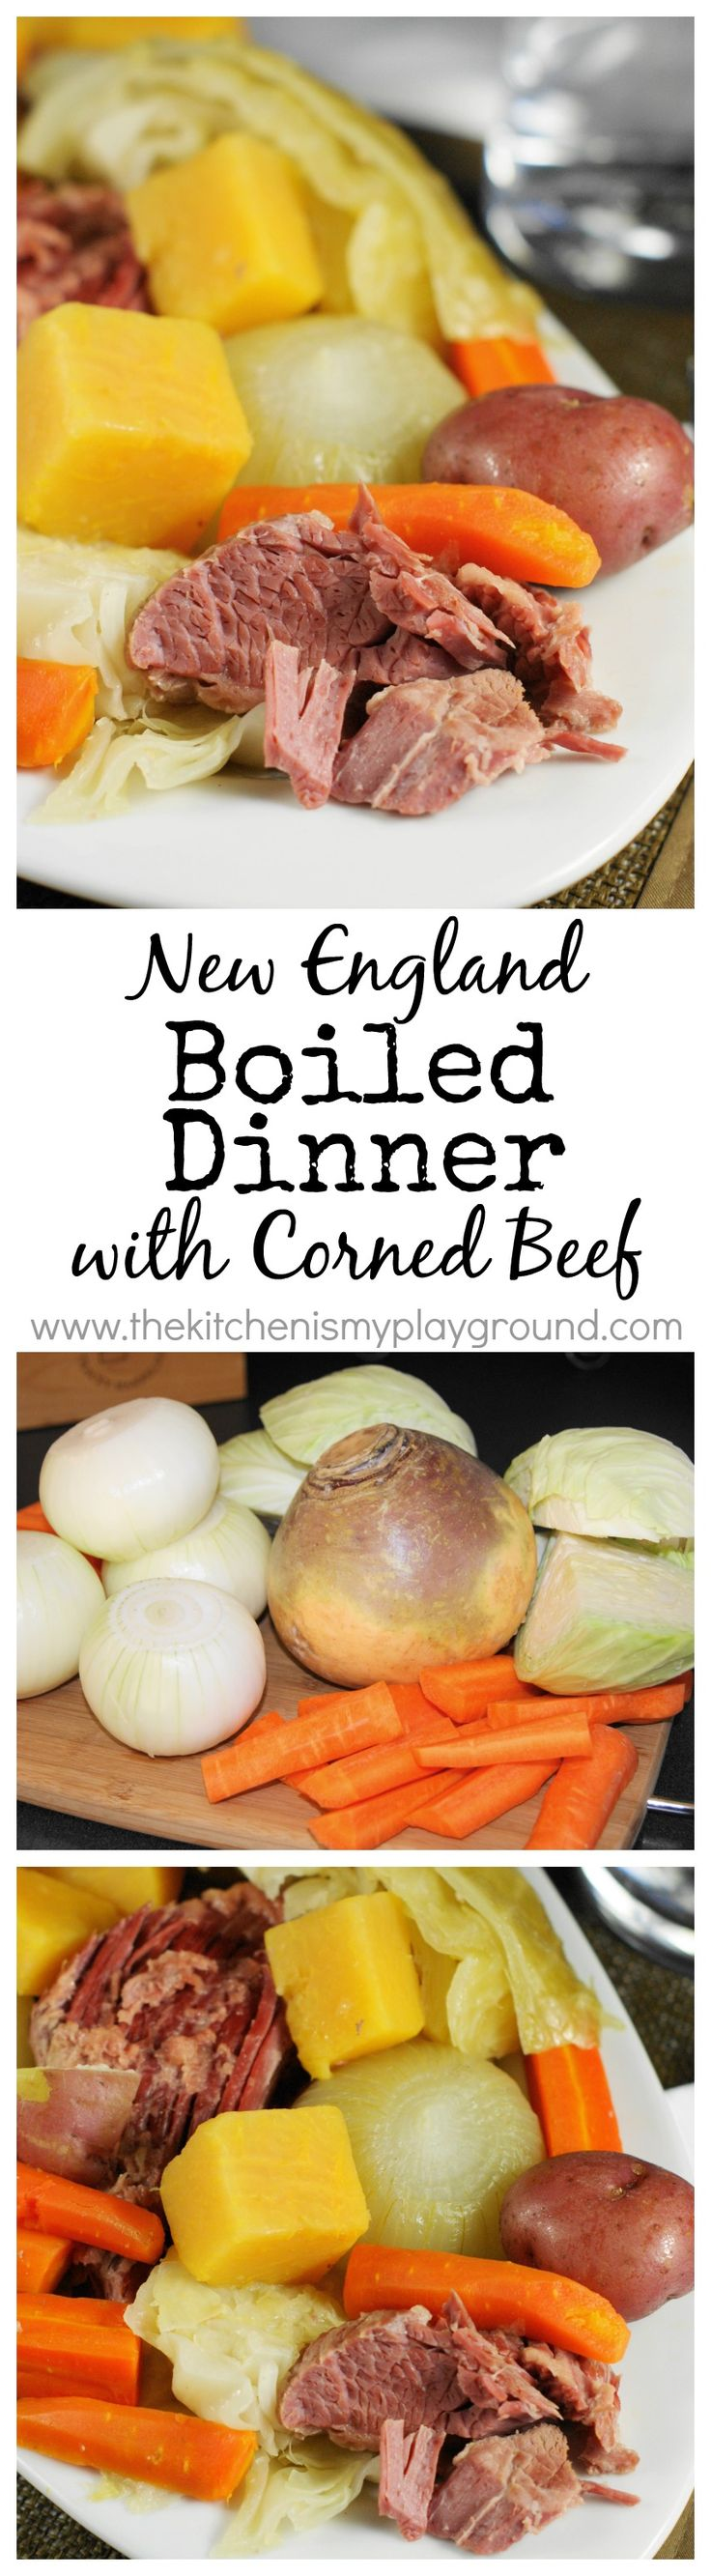 New England Boiled Dinner ~ A traditional hearty one-pot classic of braised corned beef, cabbage, & root vegetables.  Such delicious comfort food!  www.thekitchenismyplayground.com: